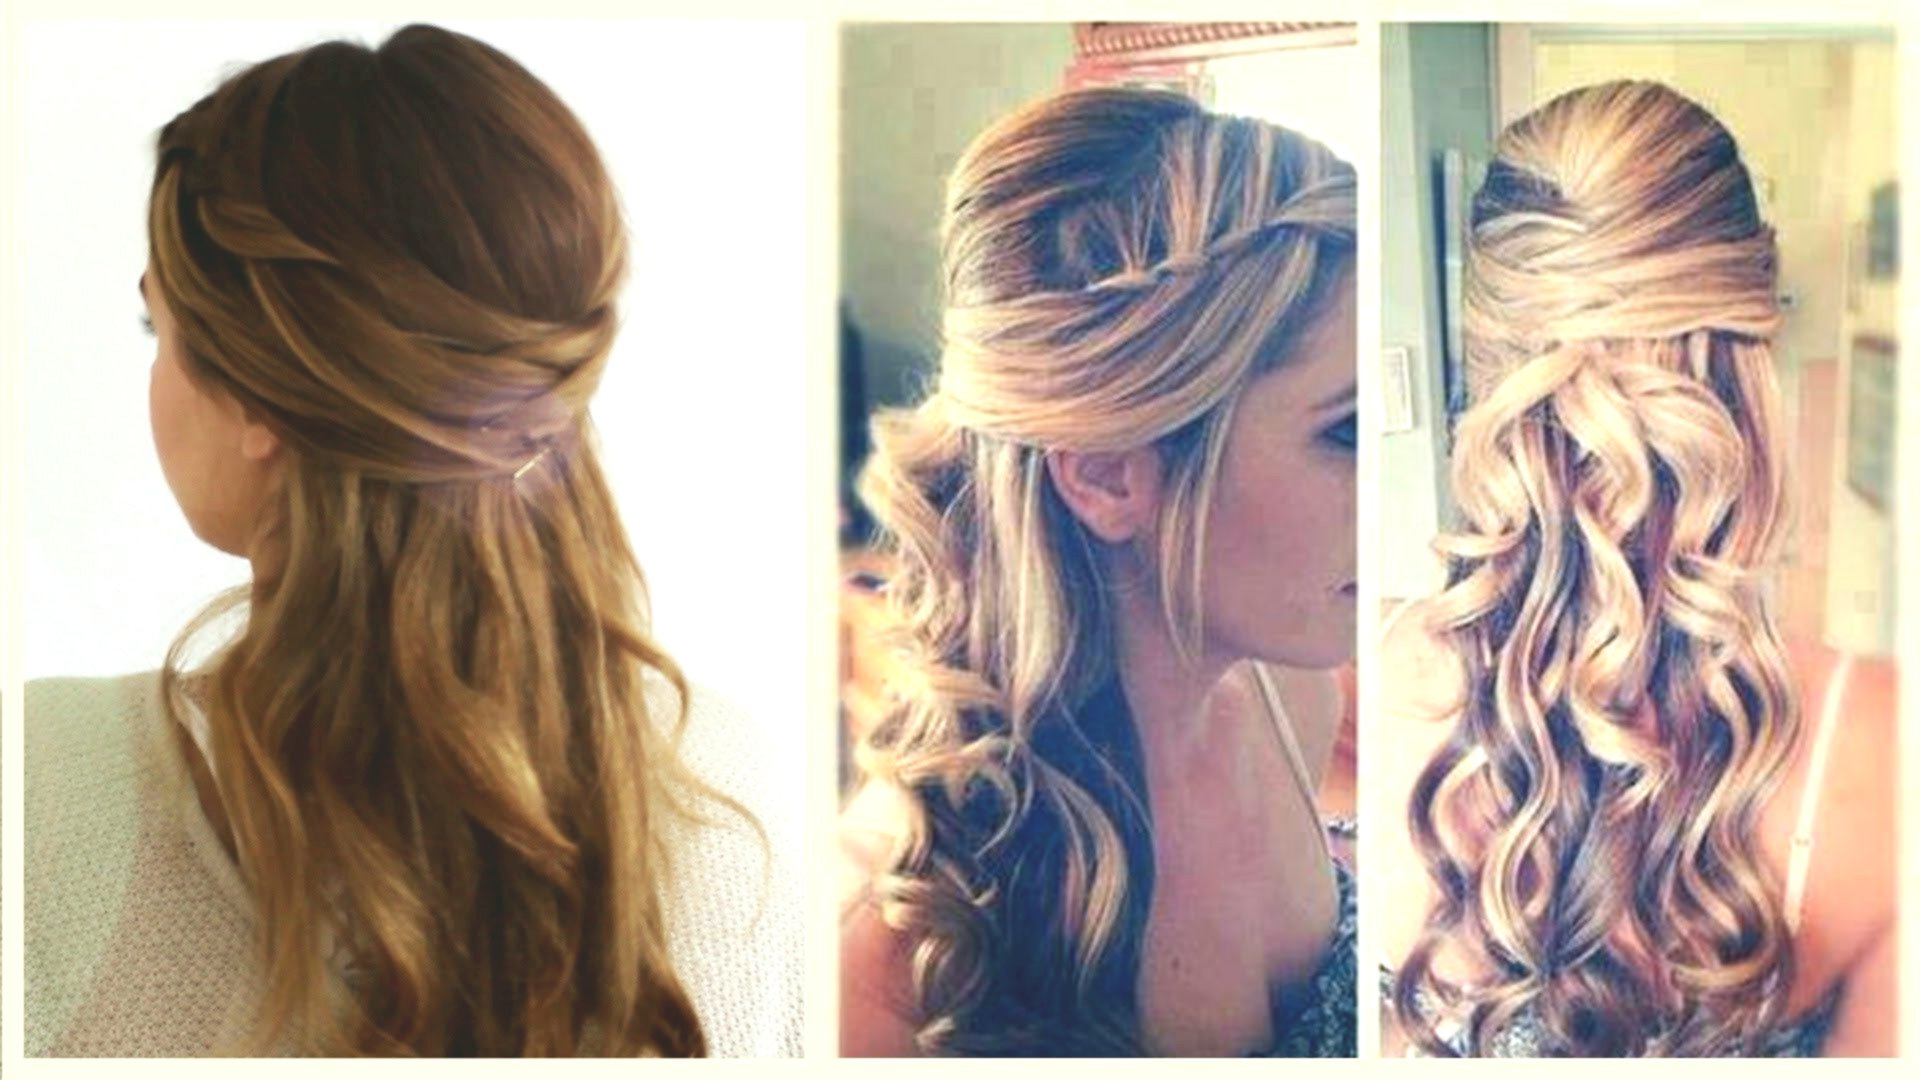 luxury simple hairstyles to make yourself gallery-beautiful Simple Hairstyles to Do Concepts